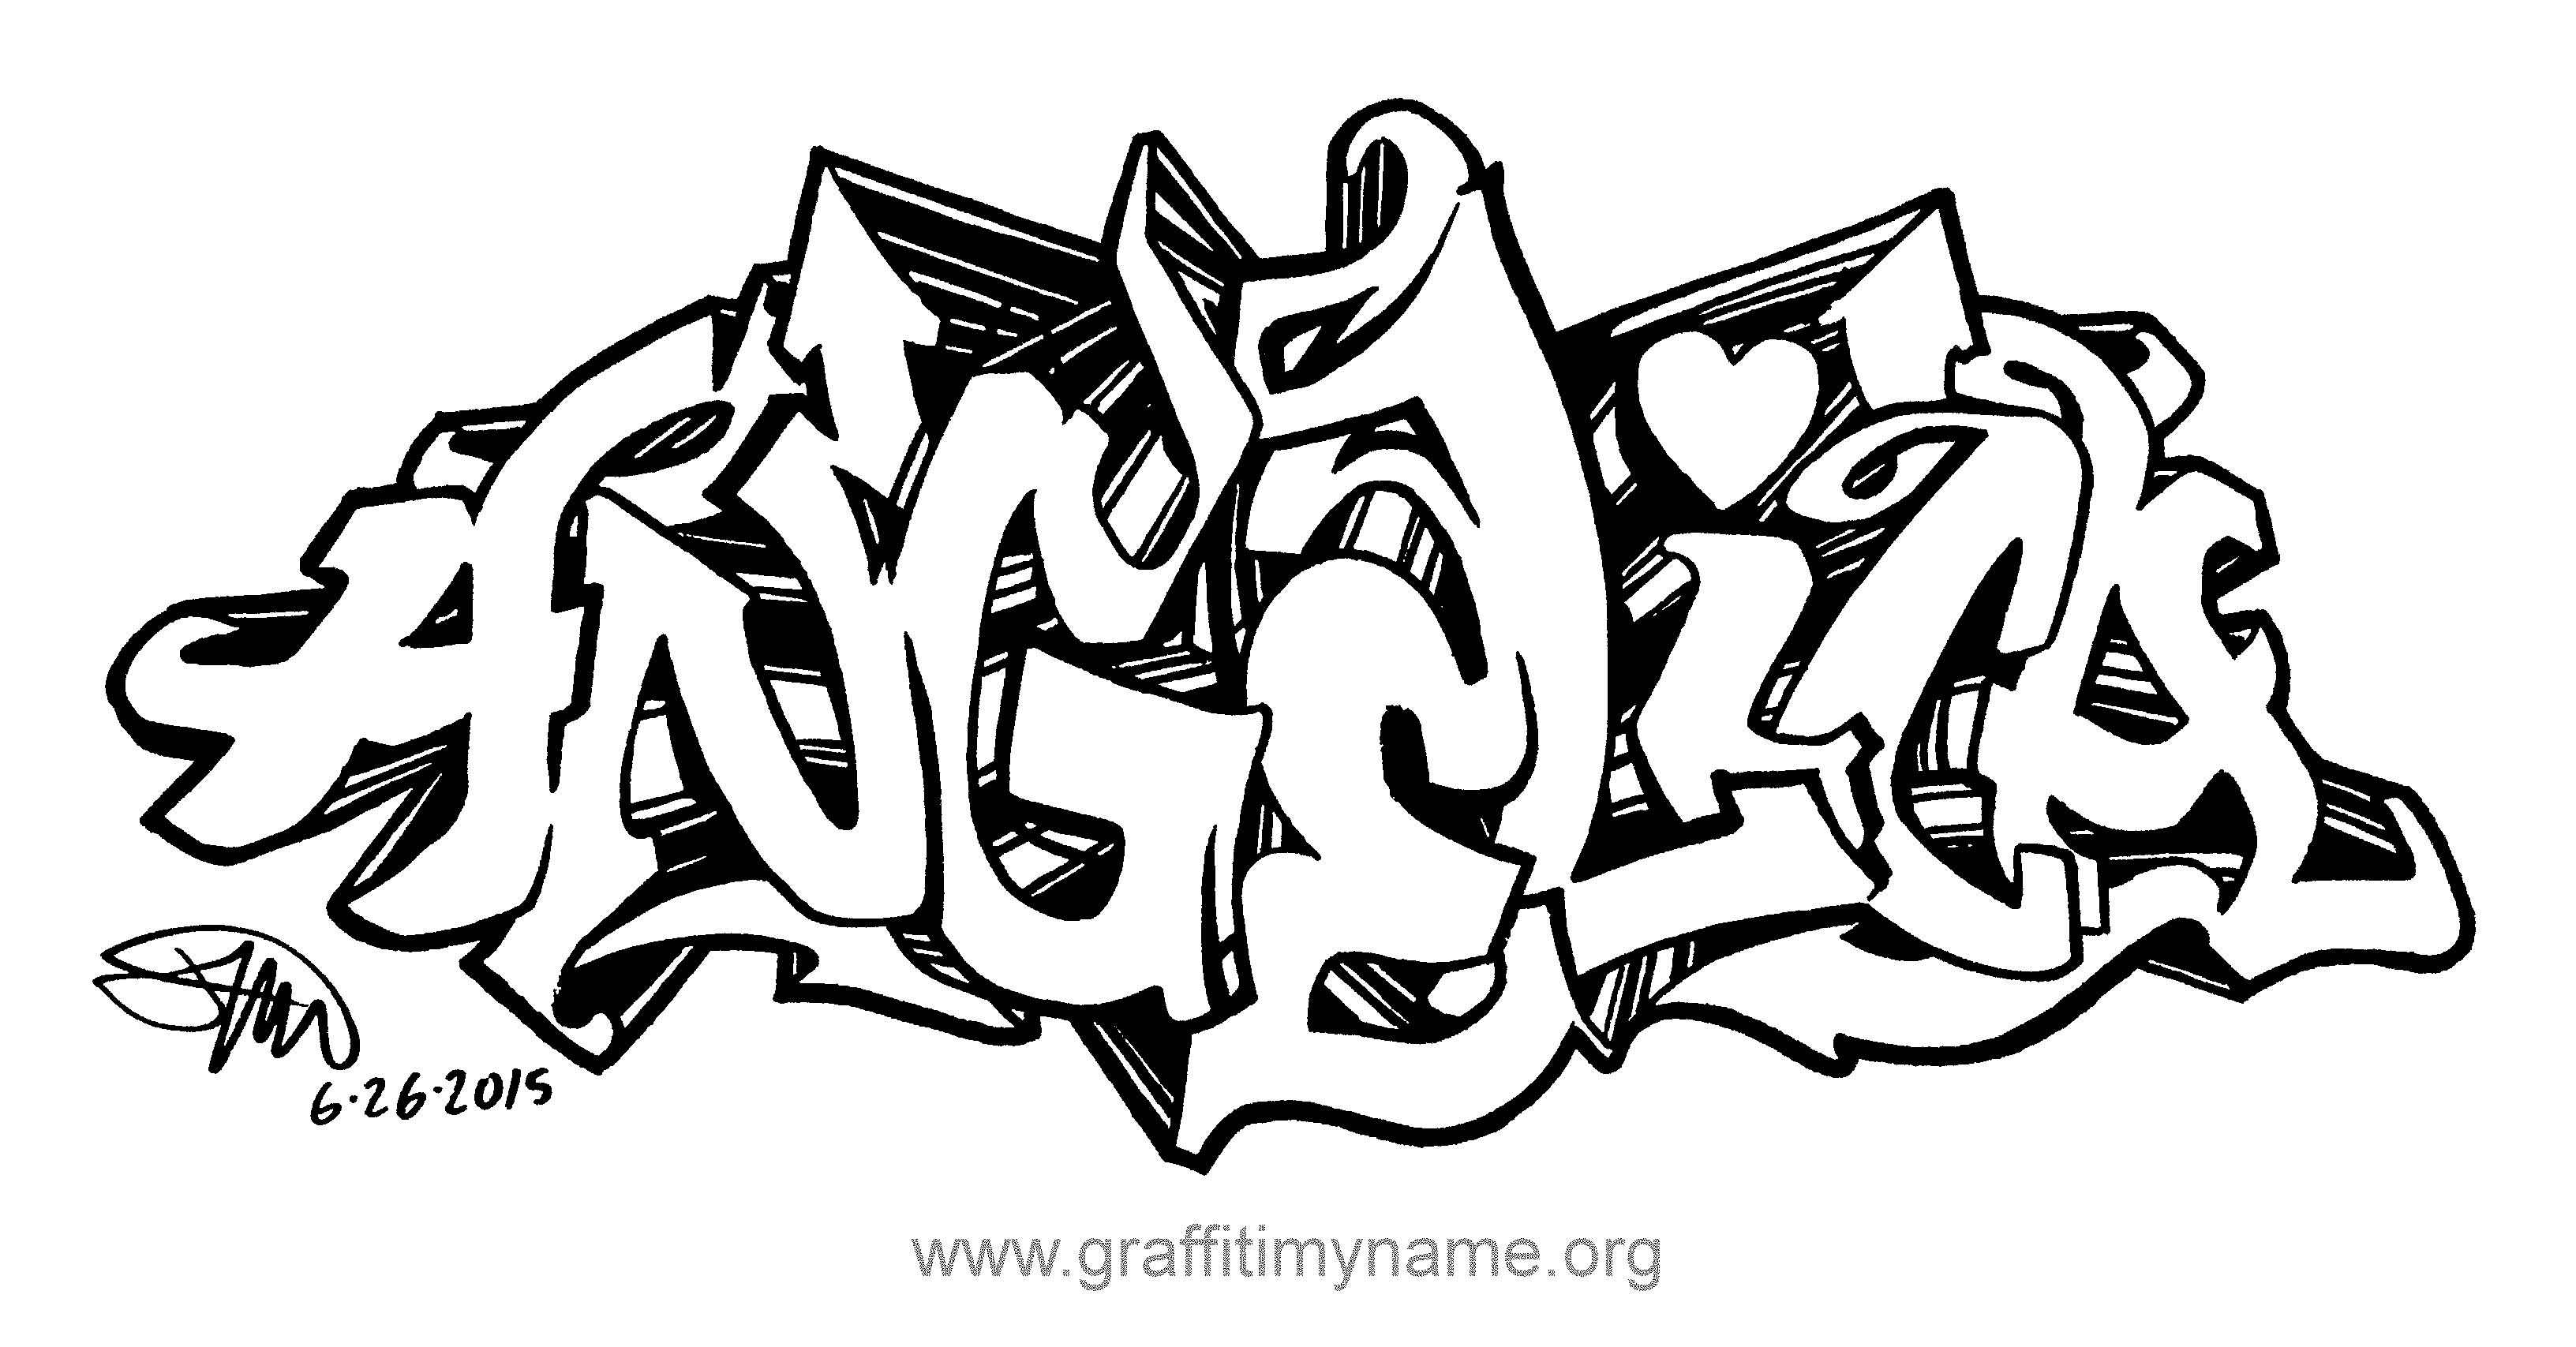 angelica - Graffiti My Name